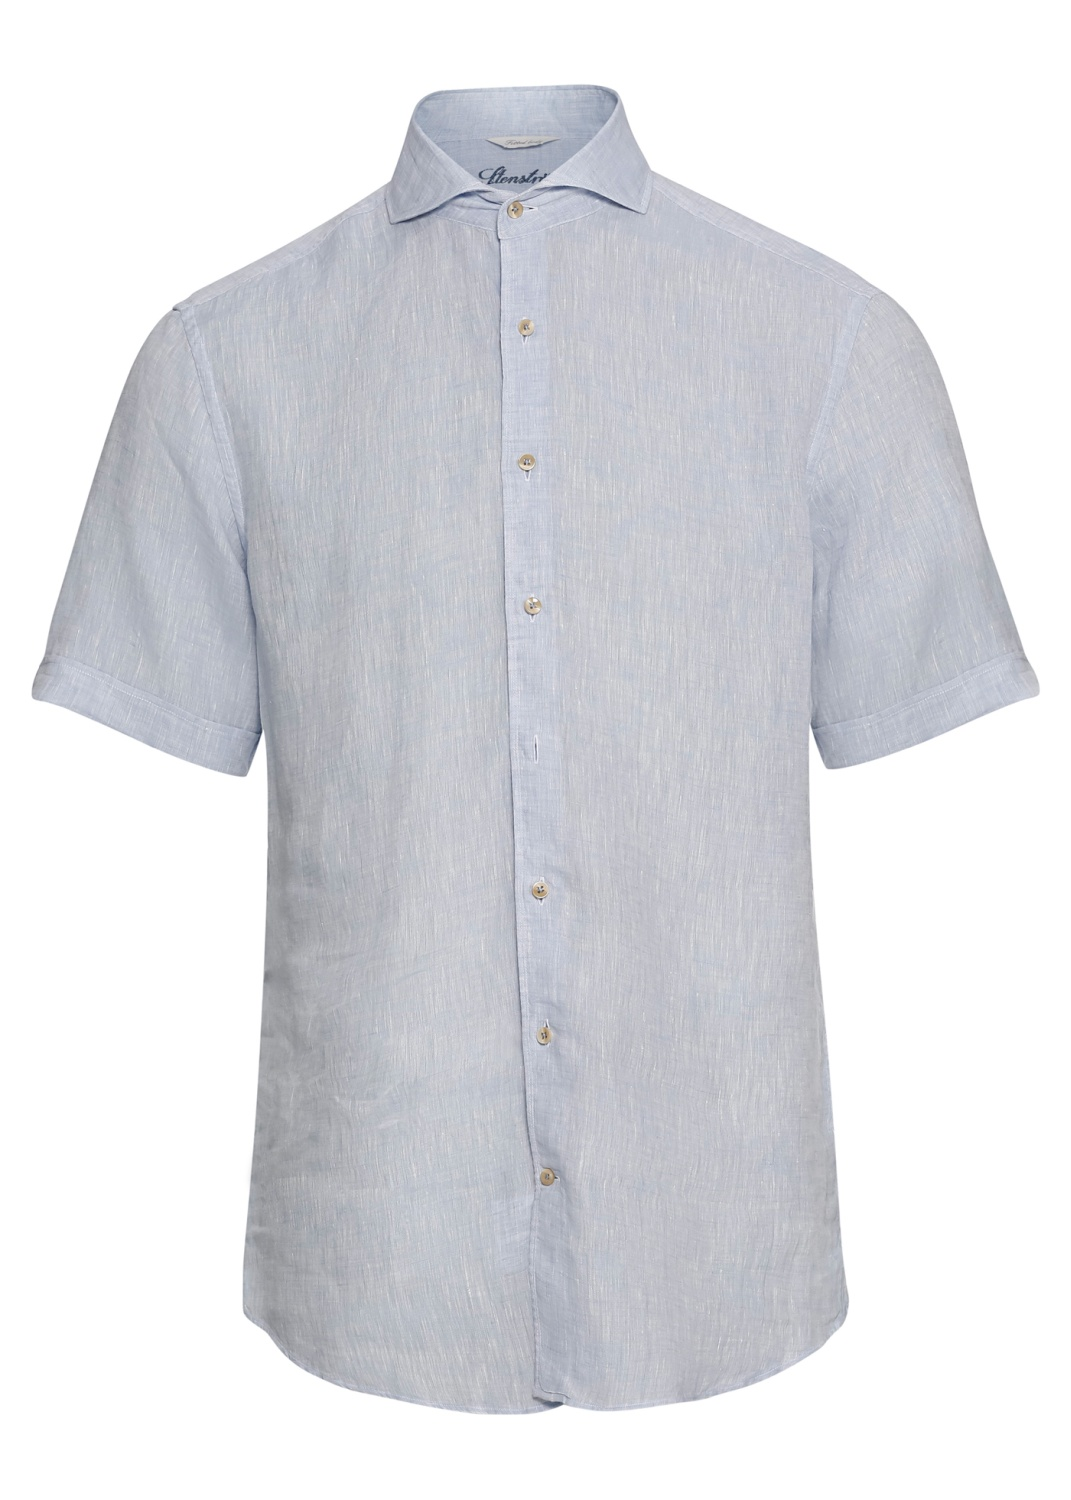 Fitted body/22, SPORT, short sleeve image number 0